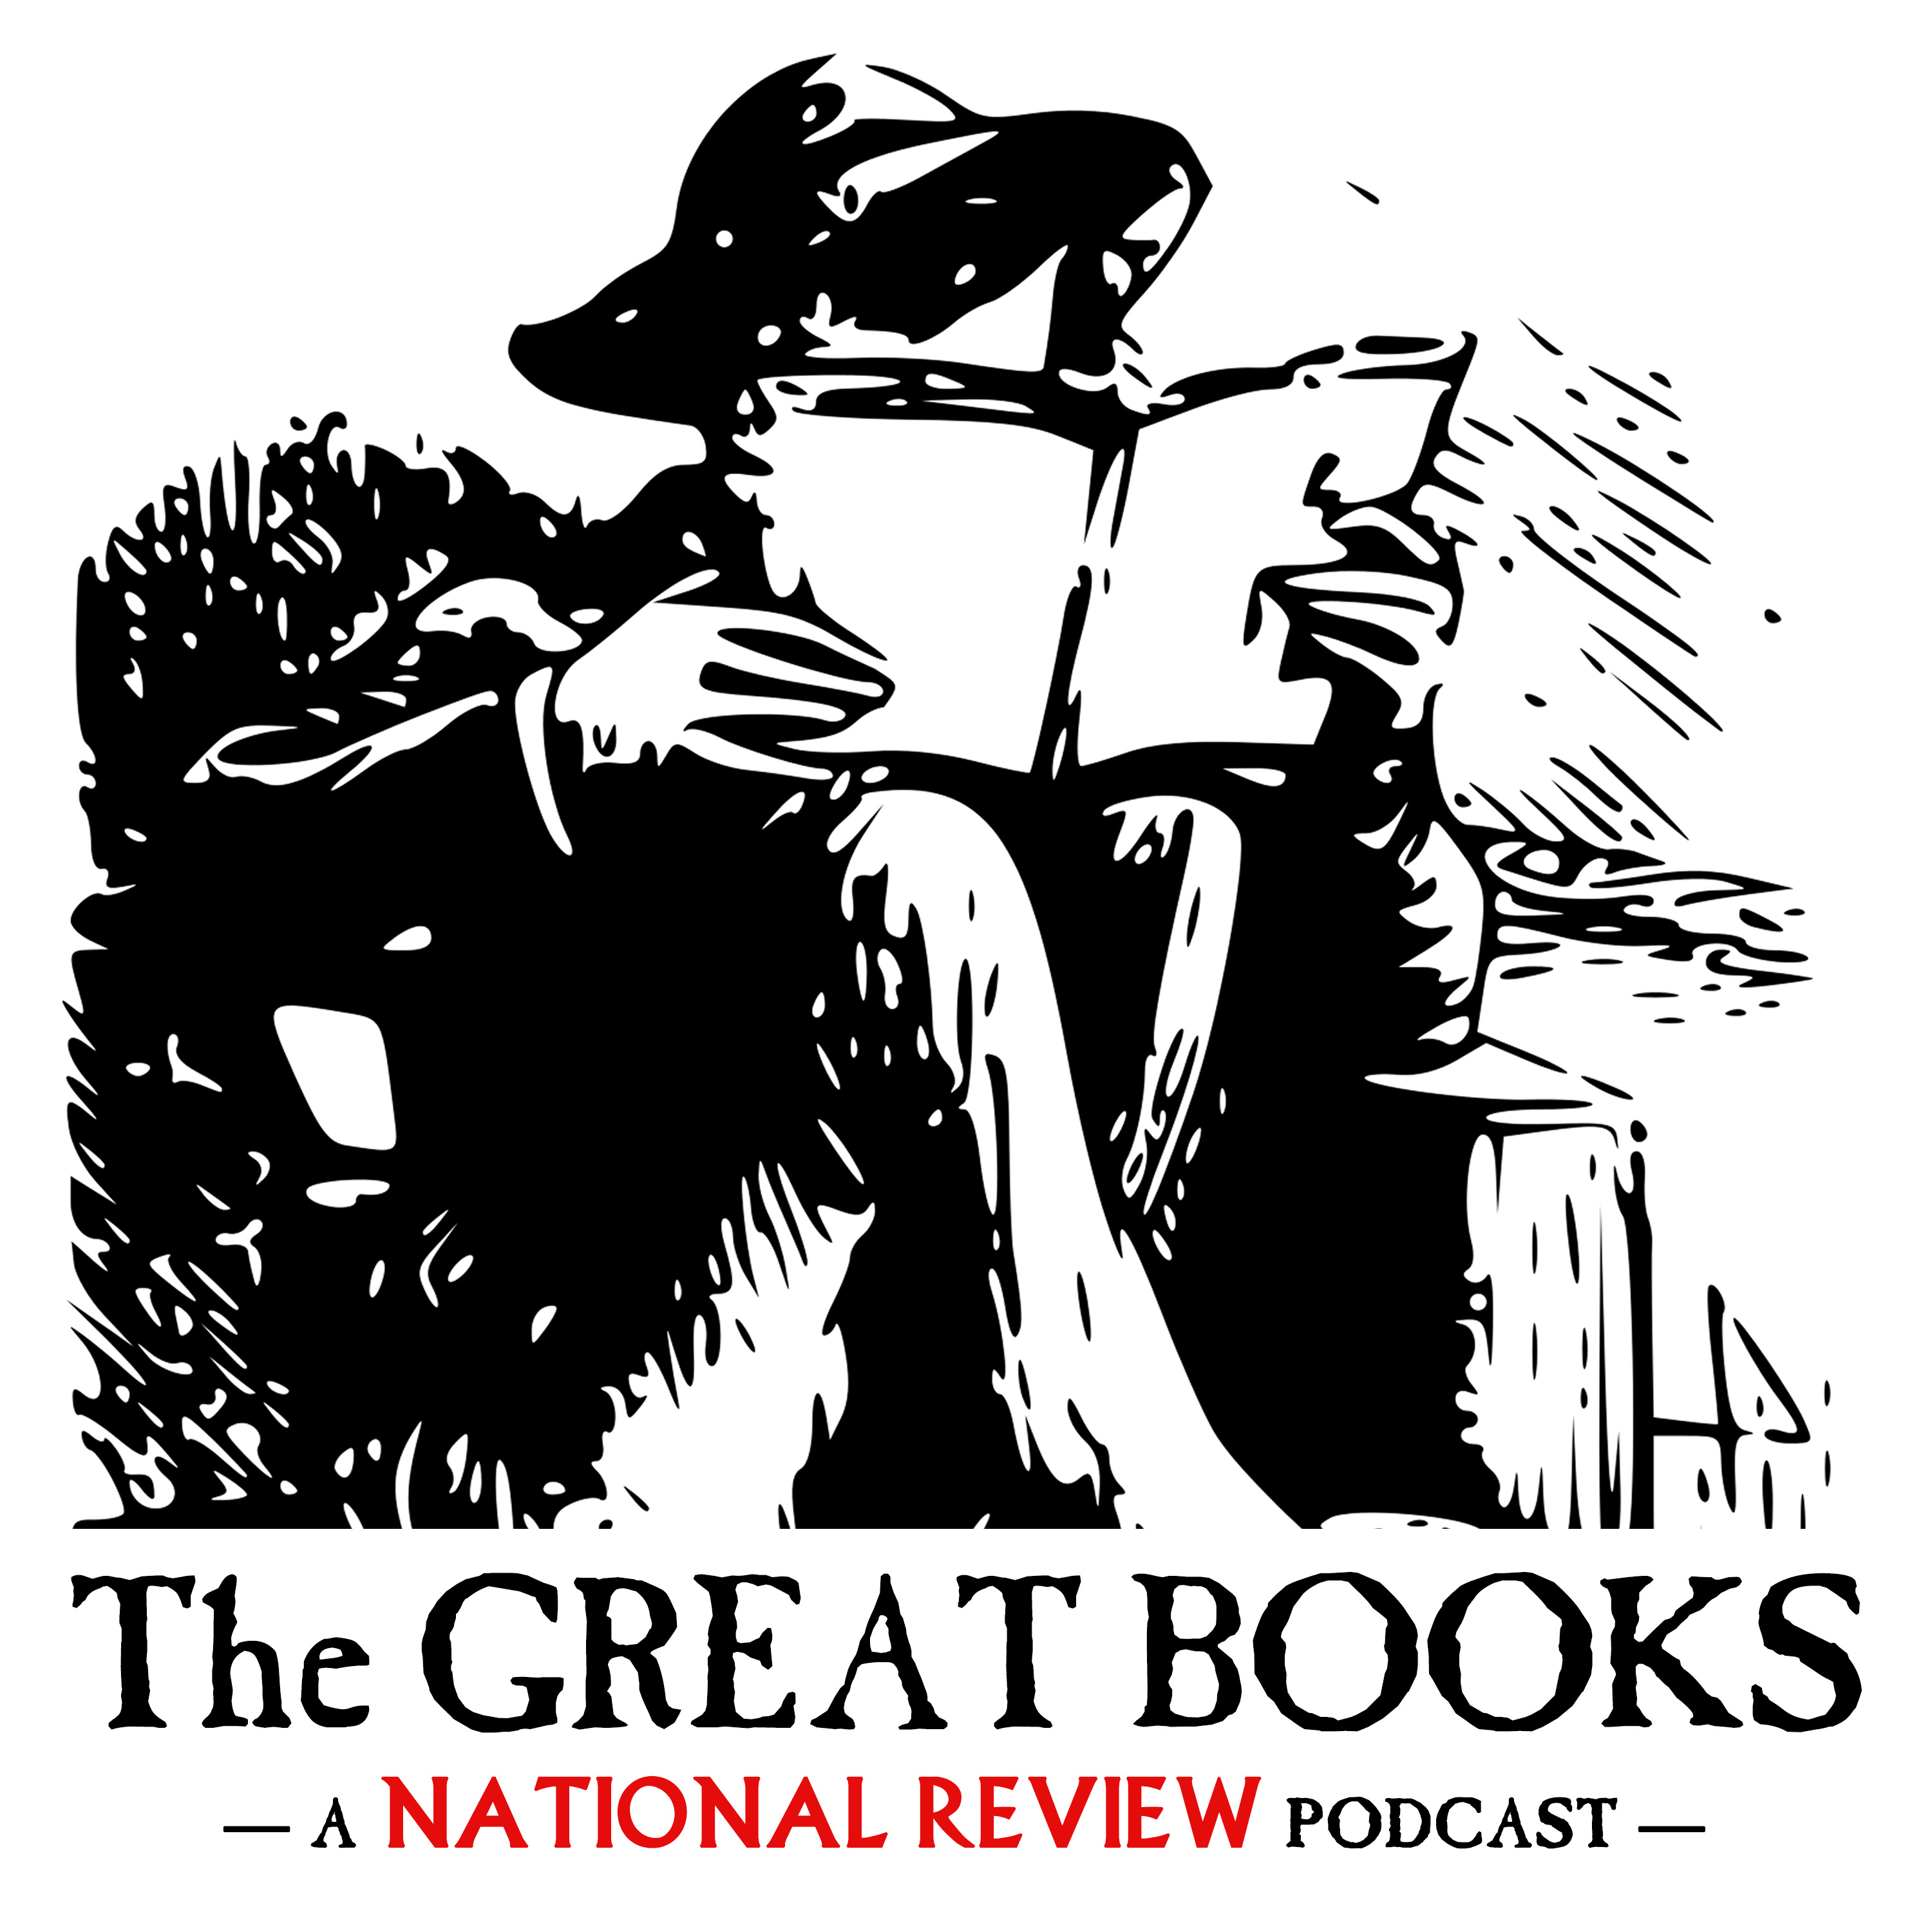 The Great Books podcast